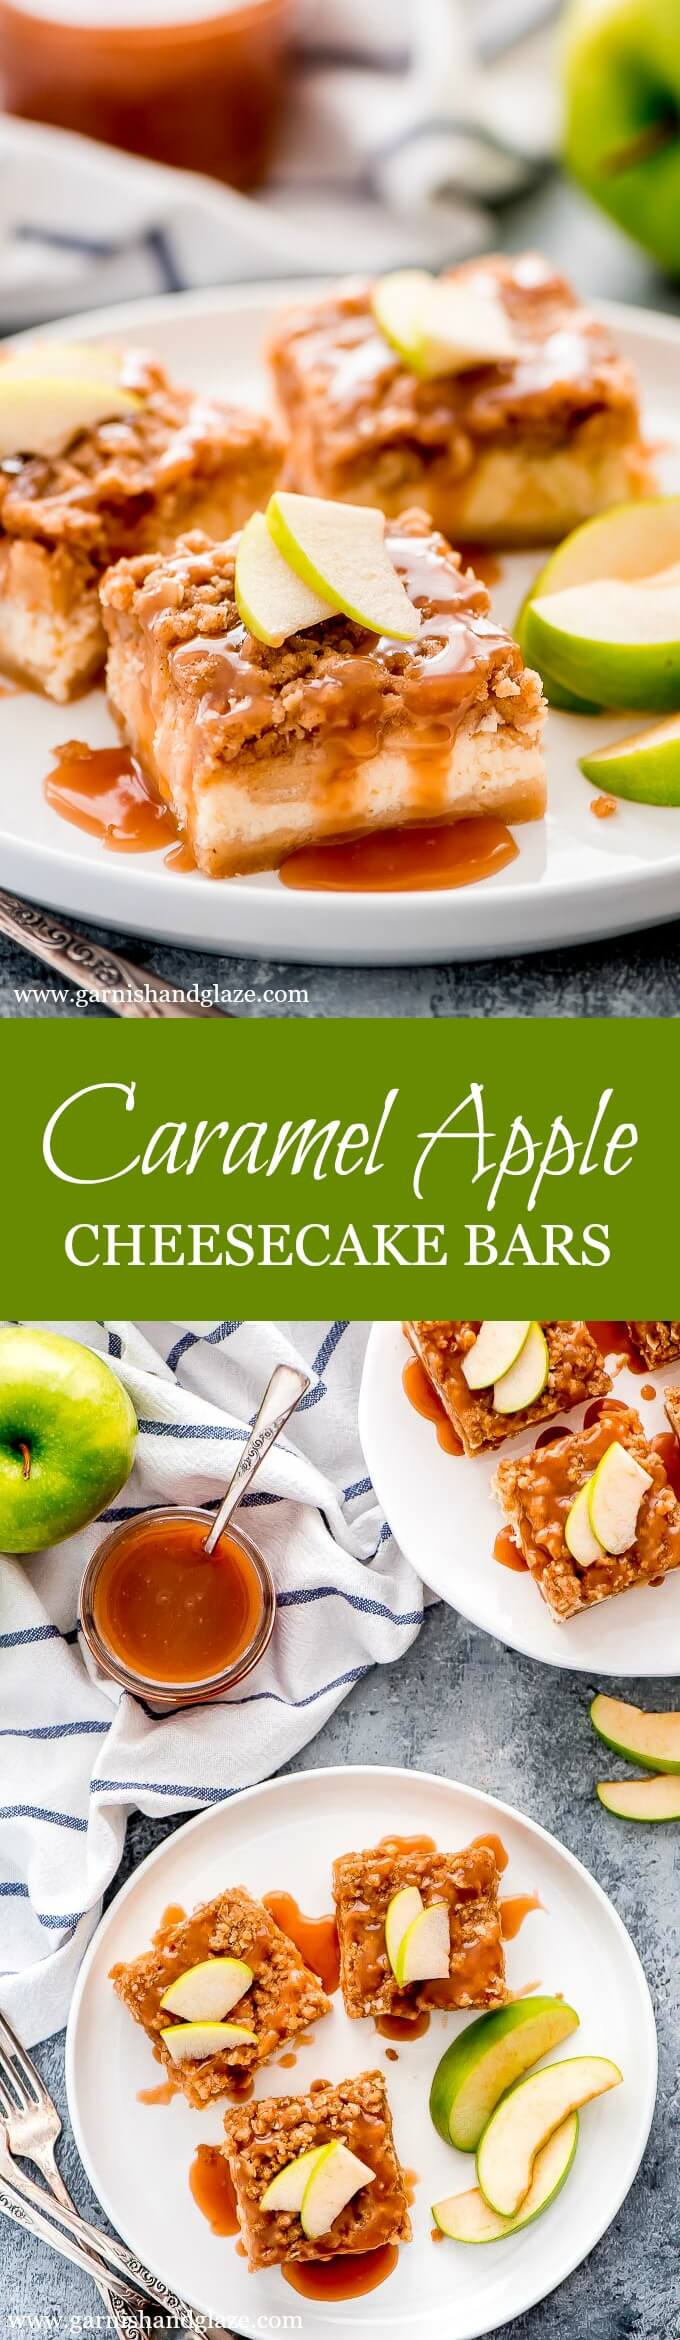 With layers of short bread crust, cheesecake, apples, streusel, and caramel drizzle, these Caramel Apple Cheesecake Bars are the perfect fall dessert.